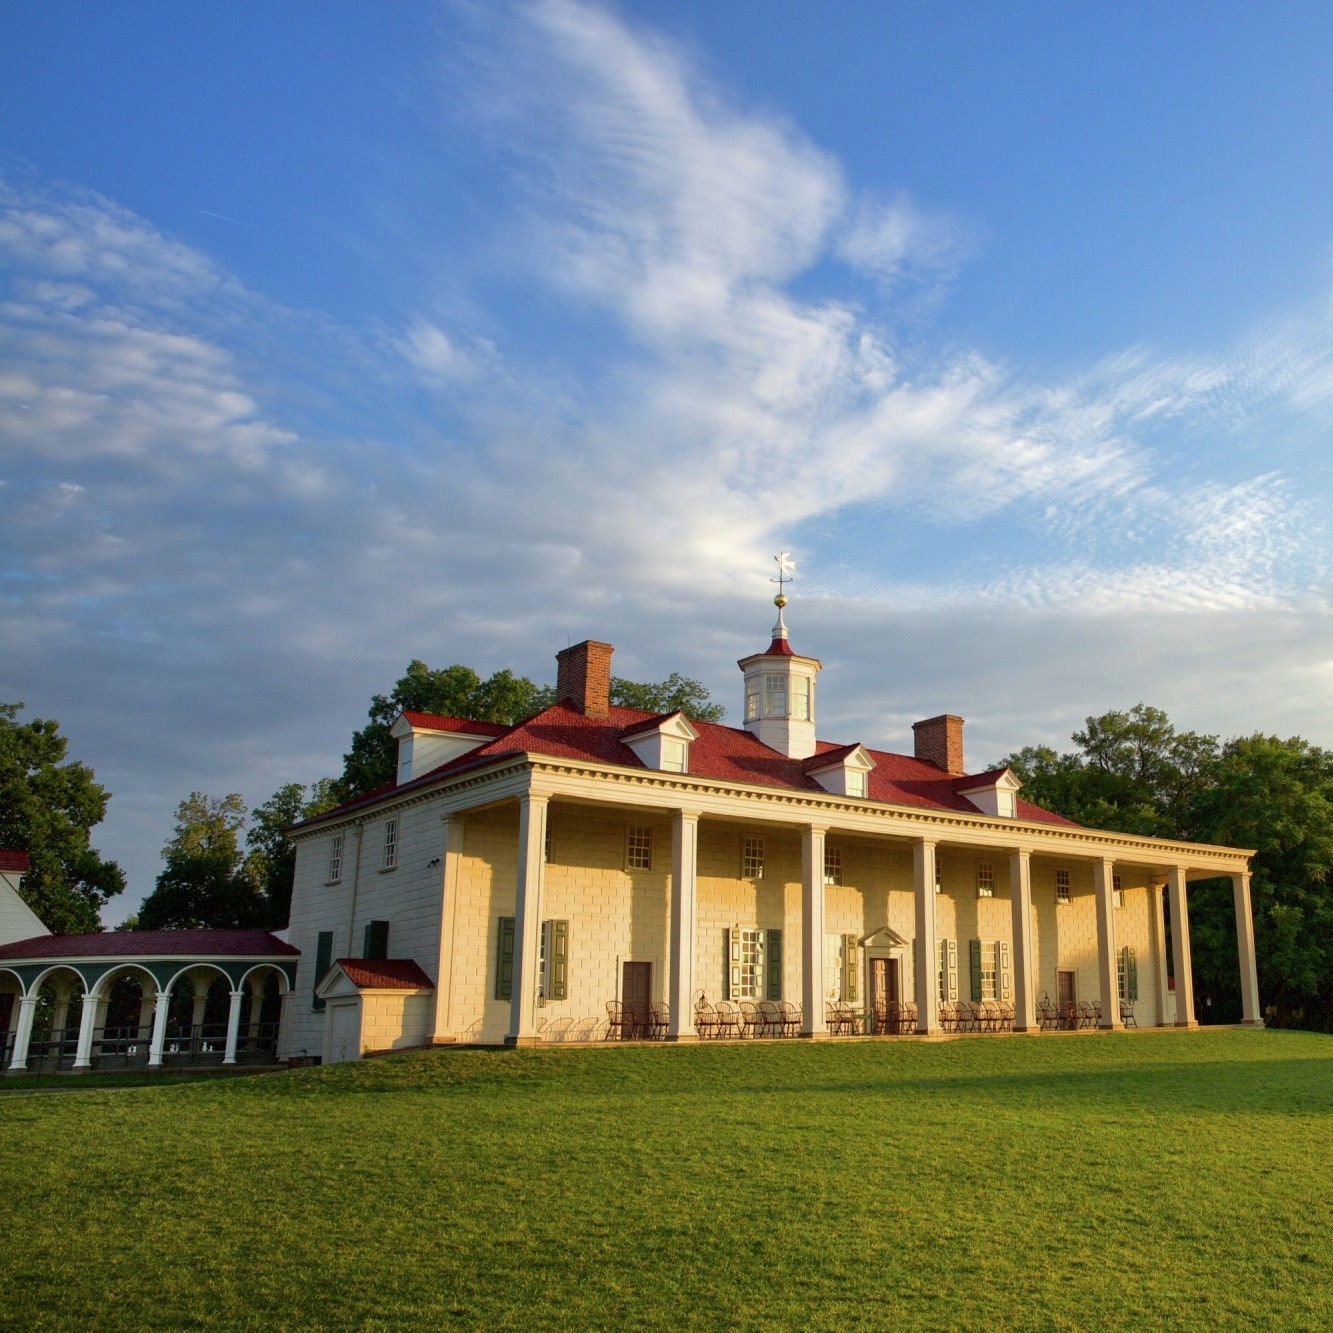 Image from mount vernon ladies association